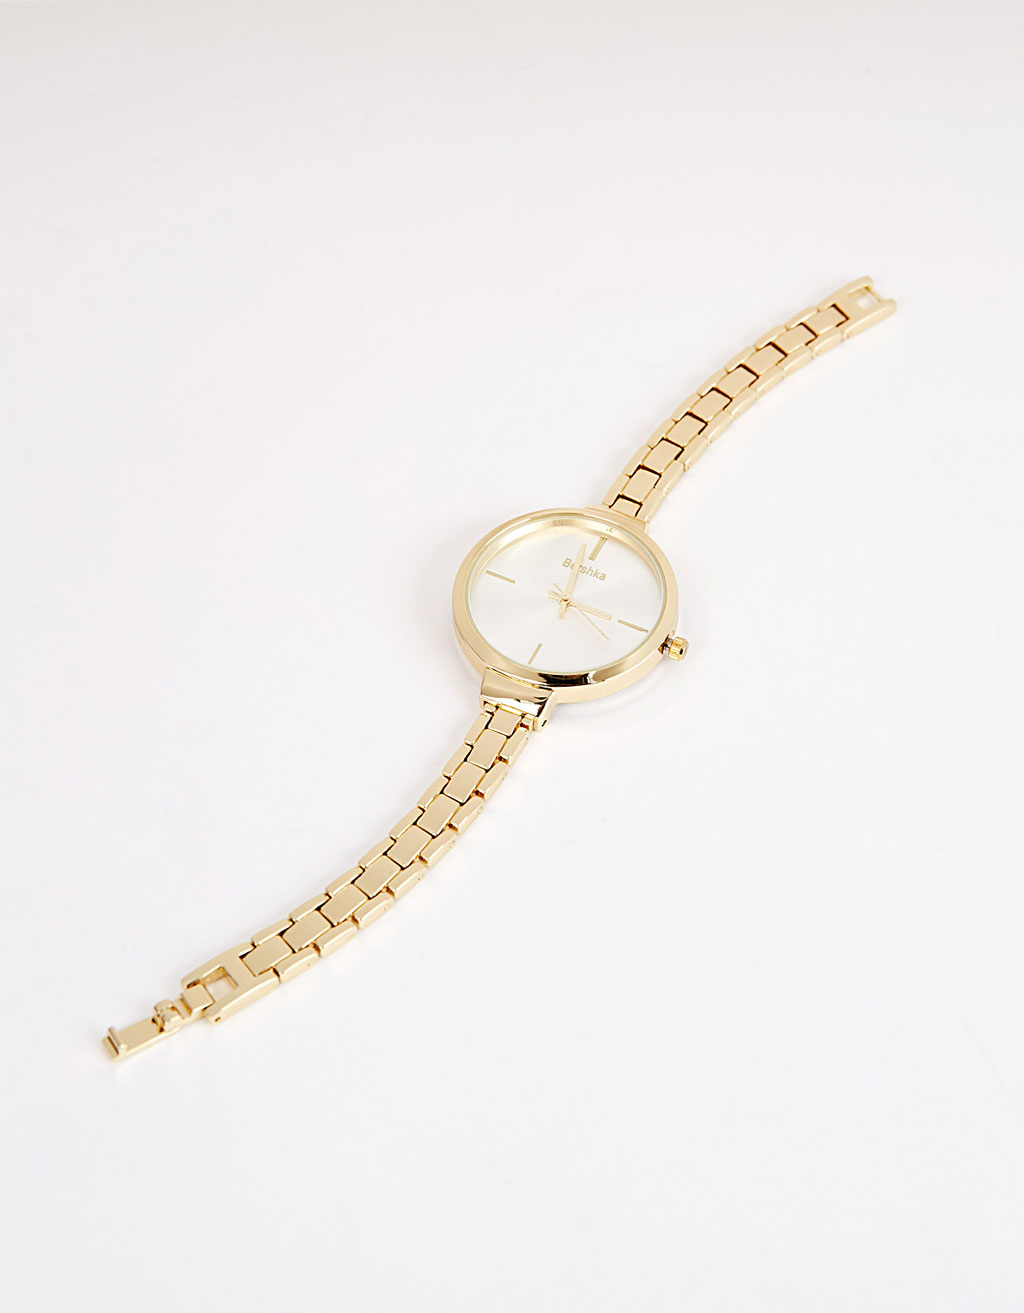 Metallic watch with thin strap